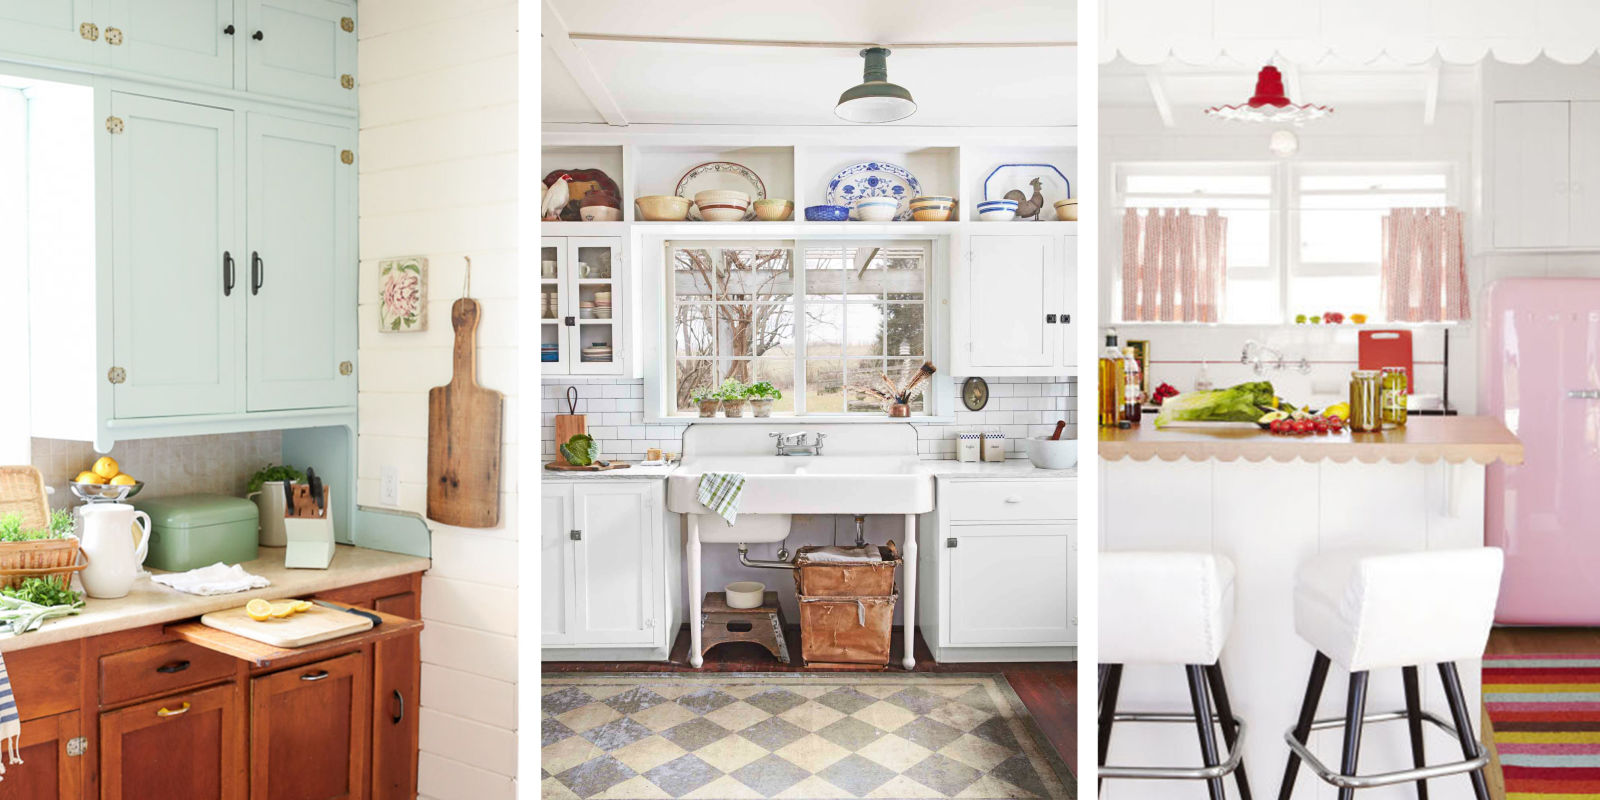 20 vintage kitchen decorating ideas design inspiration for Old kitchen ideas